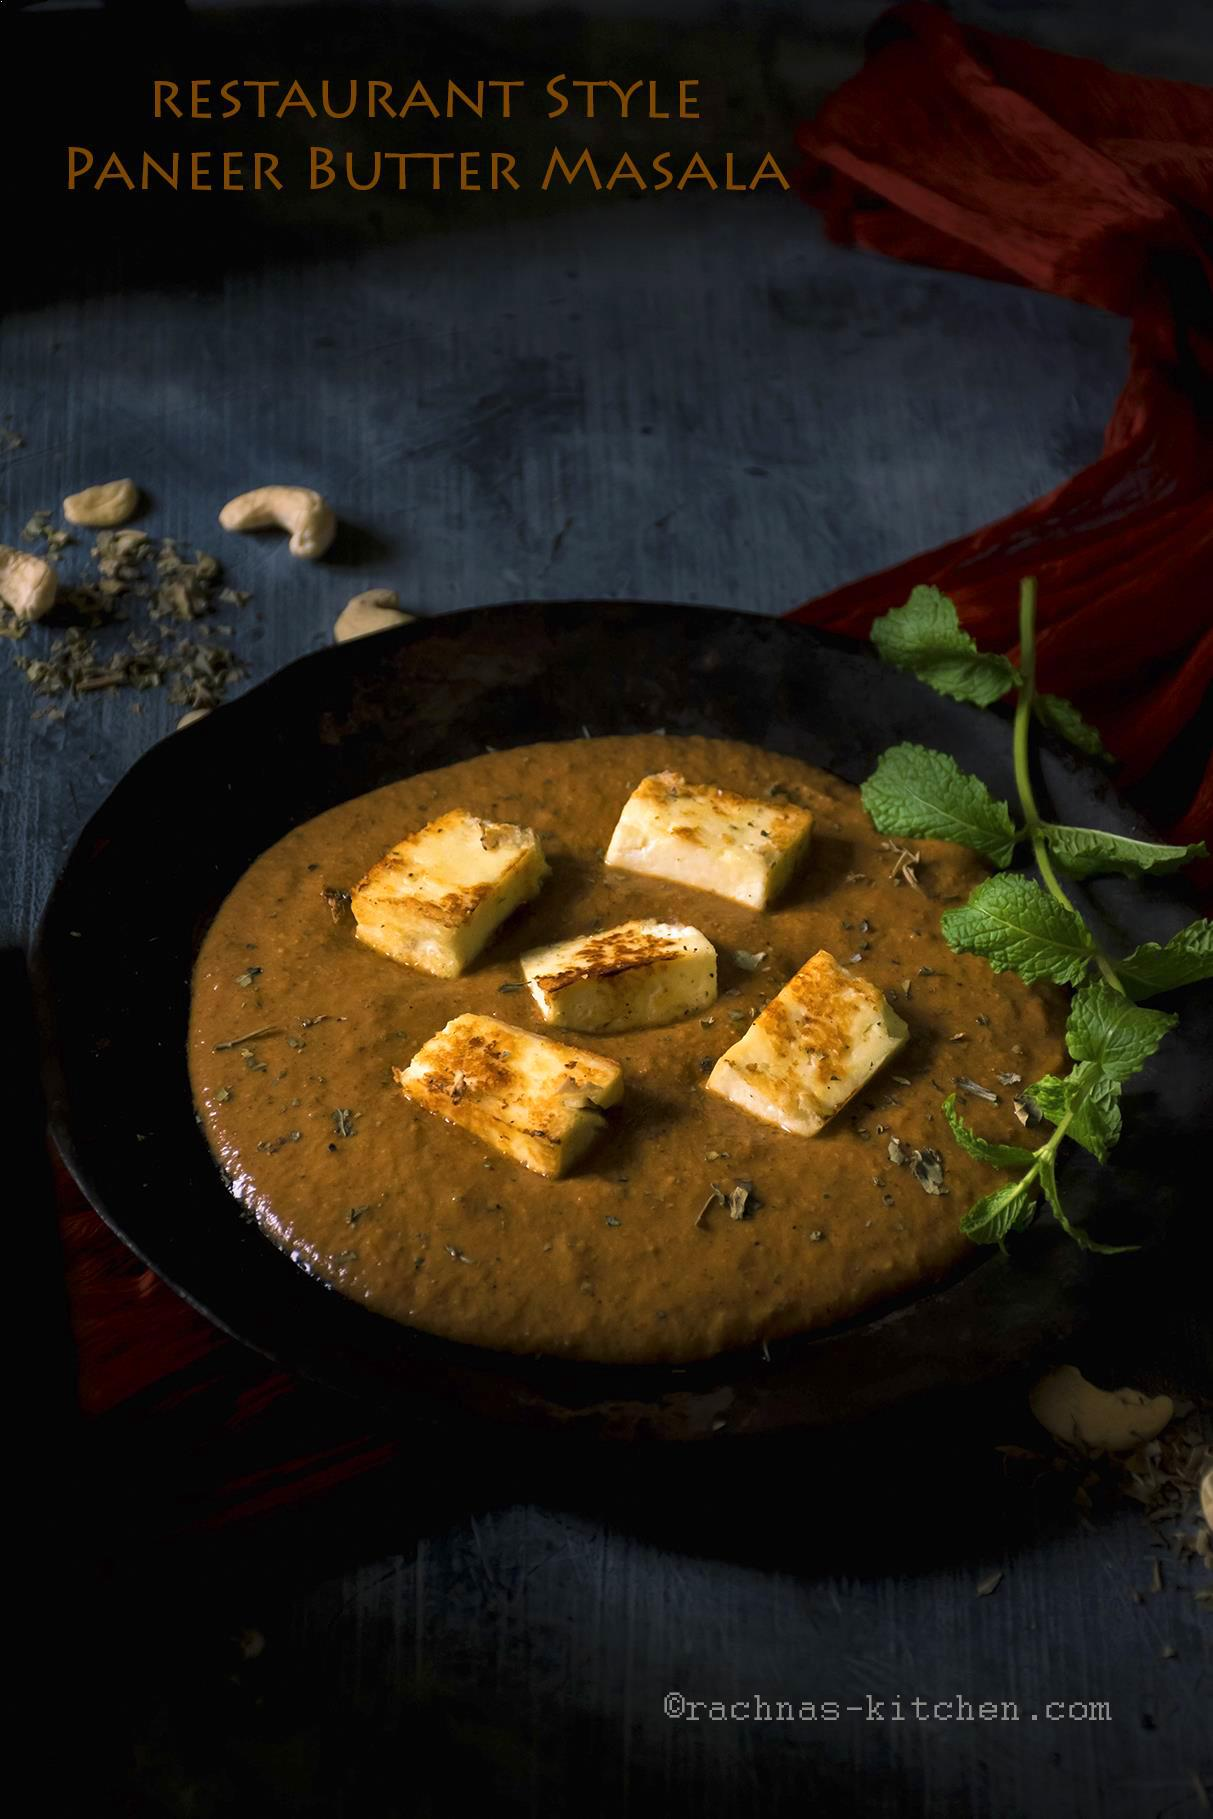 Authentic paneer butter masala